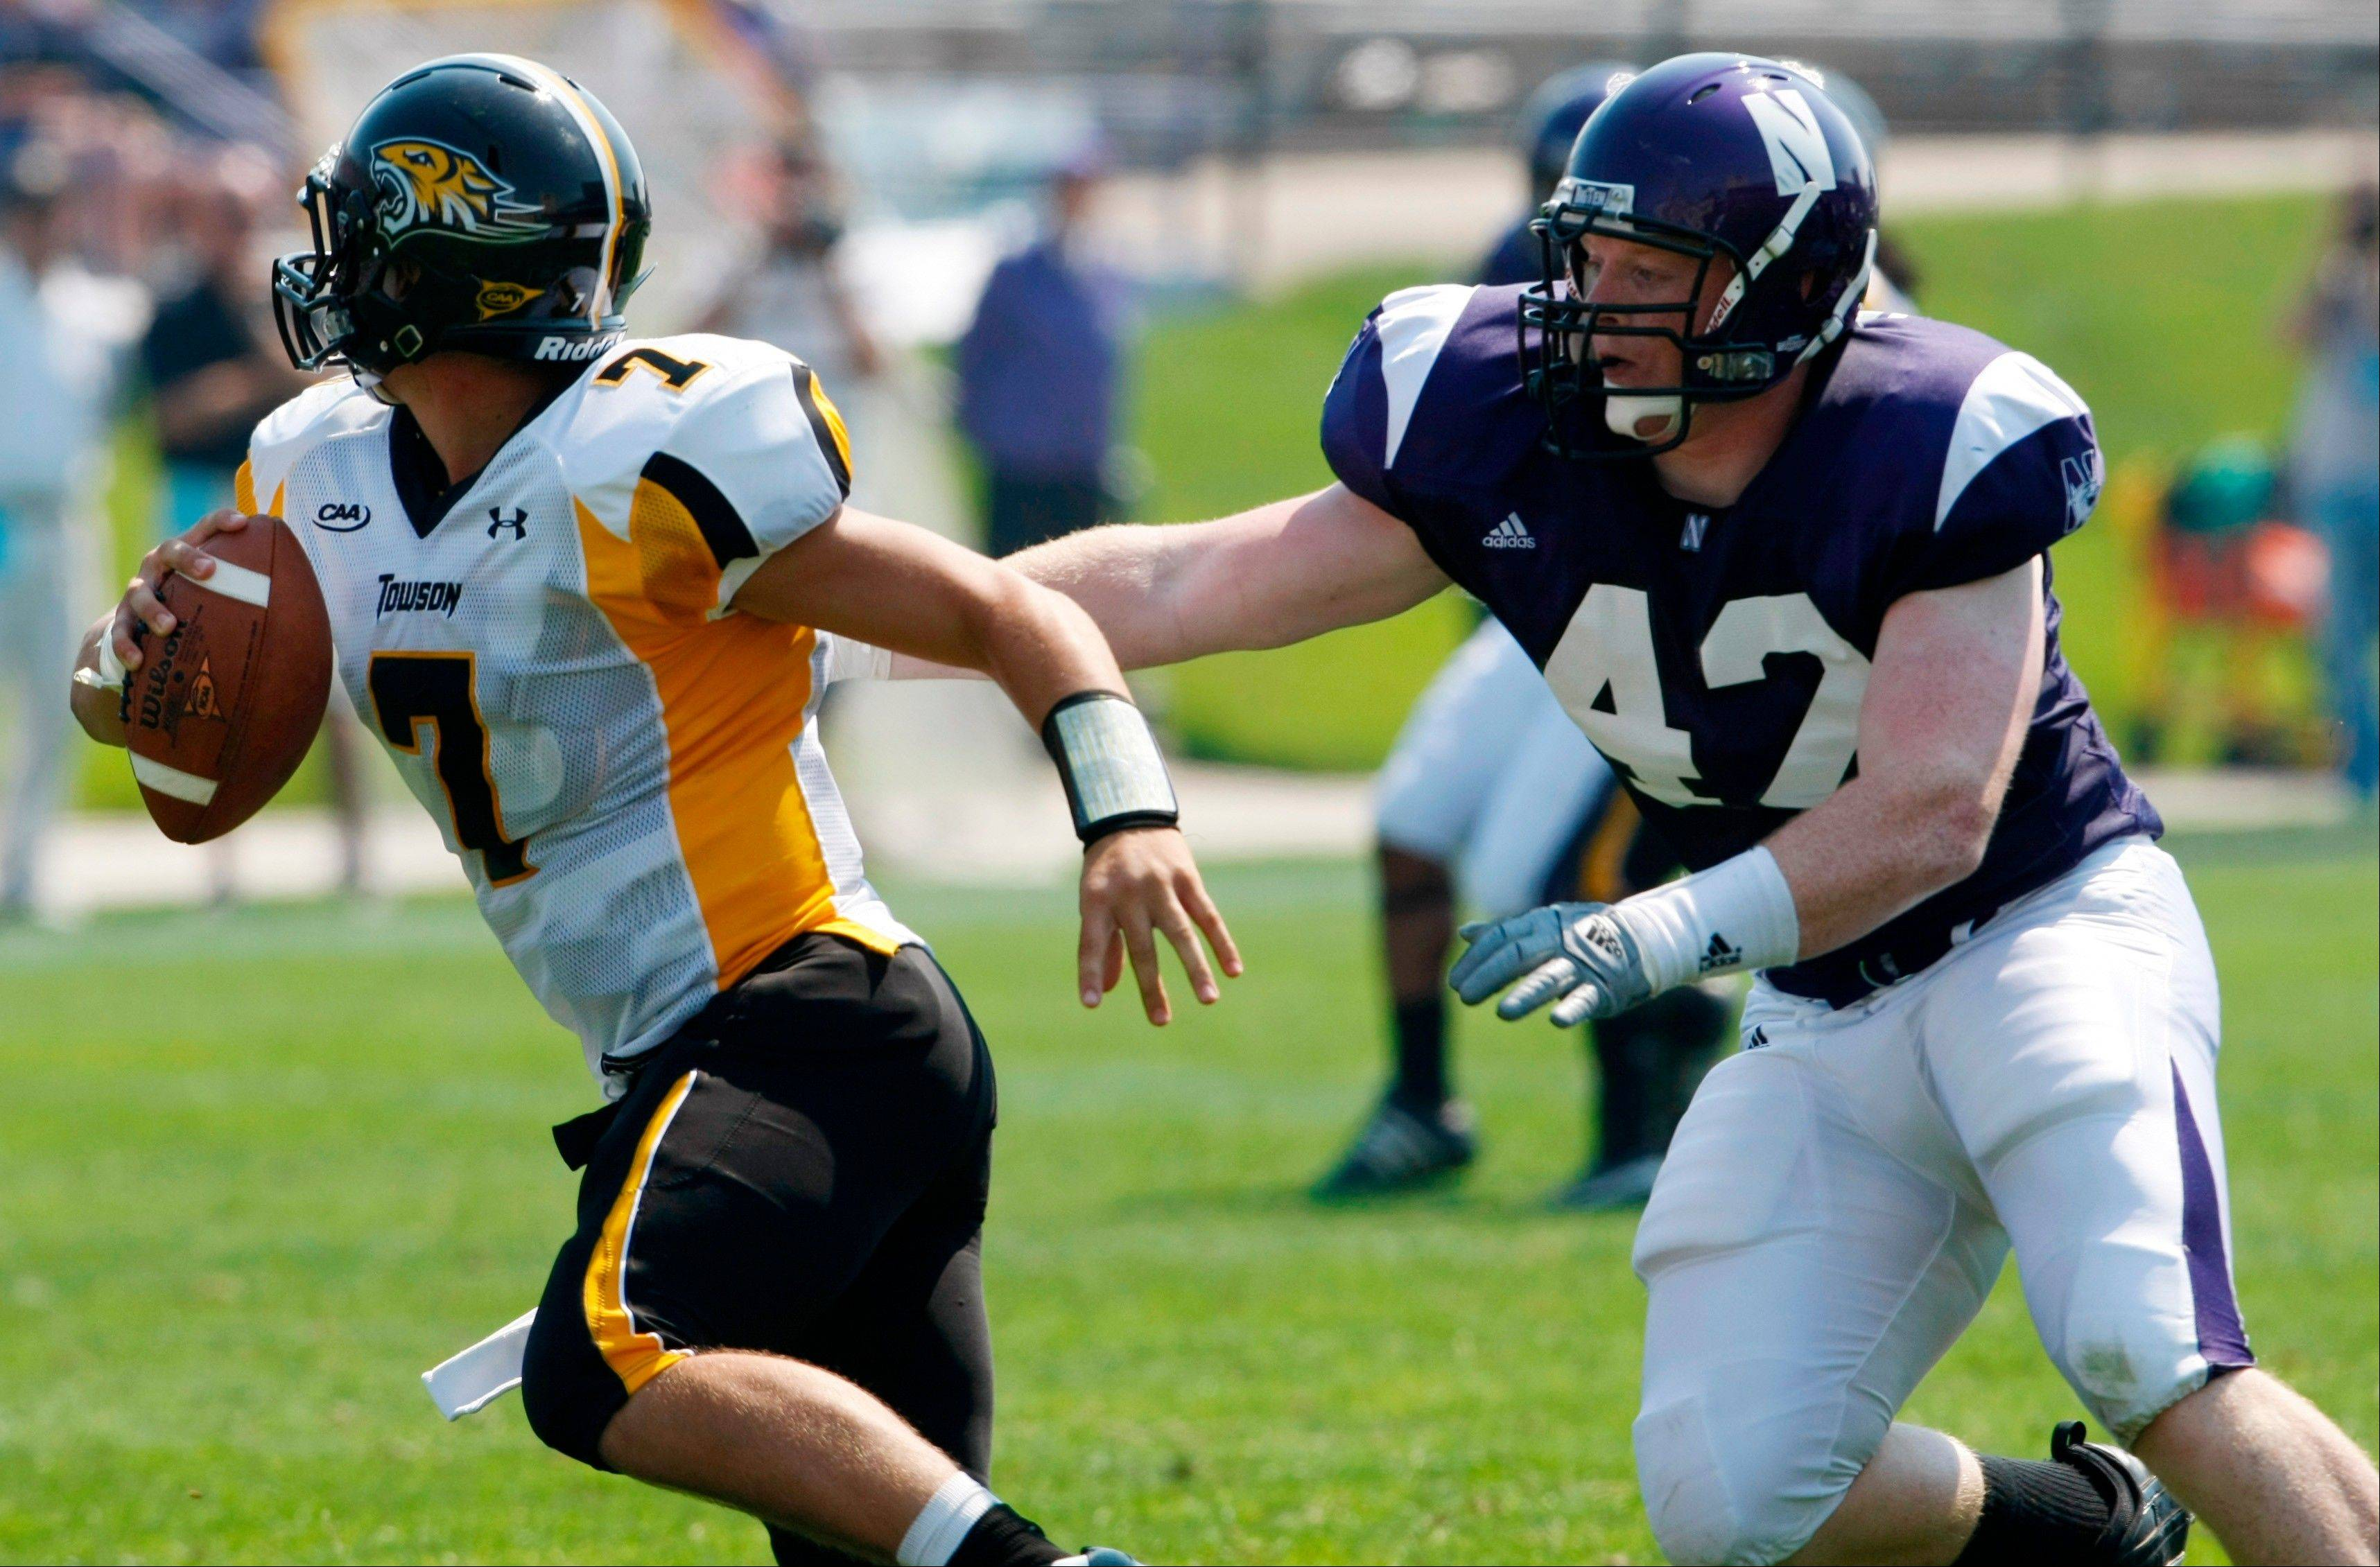 Northwestern's Kevin Watt (42) tries to sack the Towson State quarterback Peter Athens(7) during the second half of an NCAA football game on Saturday, Sept. 5, 2009, in Evanston, Ill.